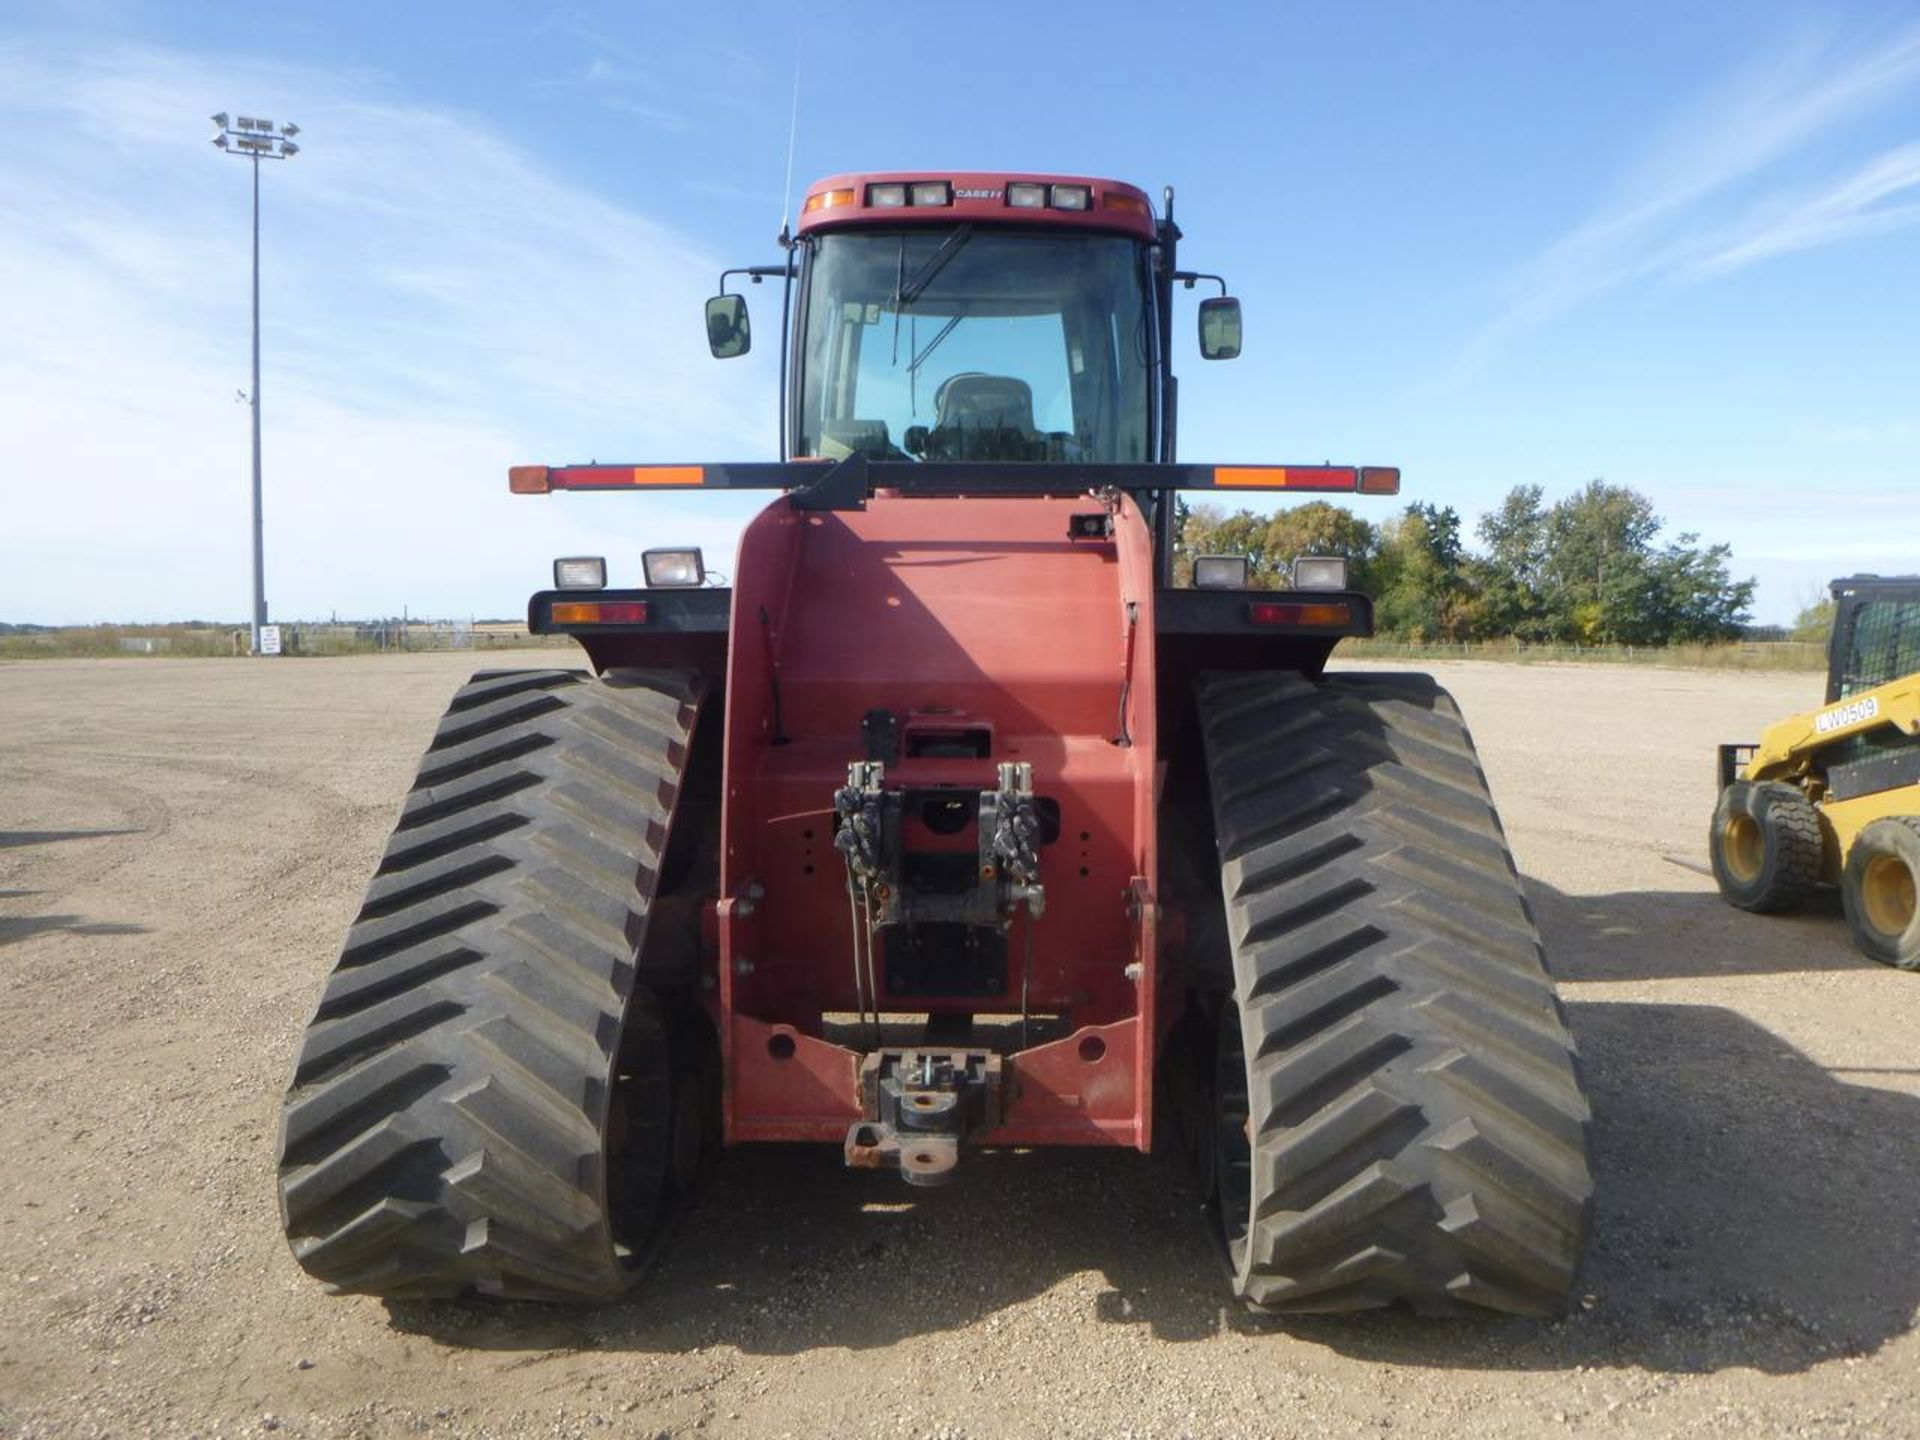 2008 Case IH 535 Tractor - Image 4 of 9